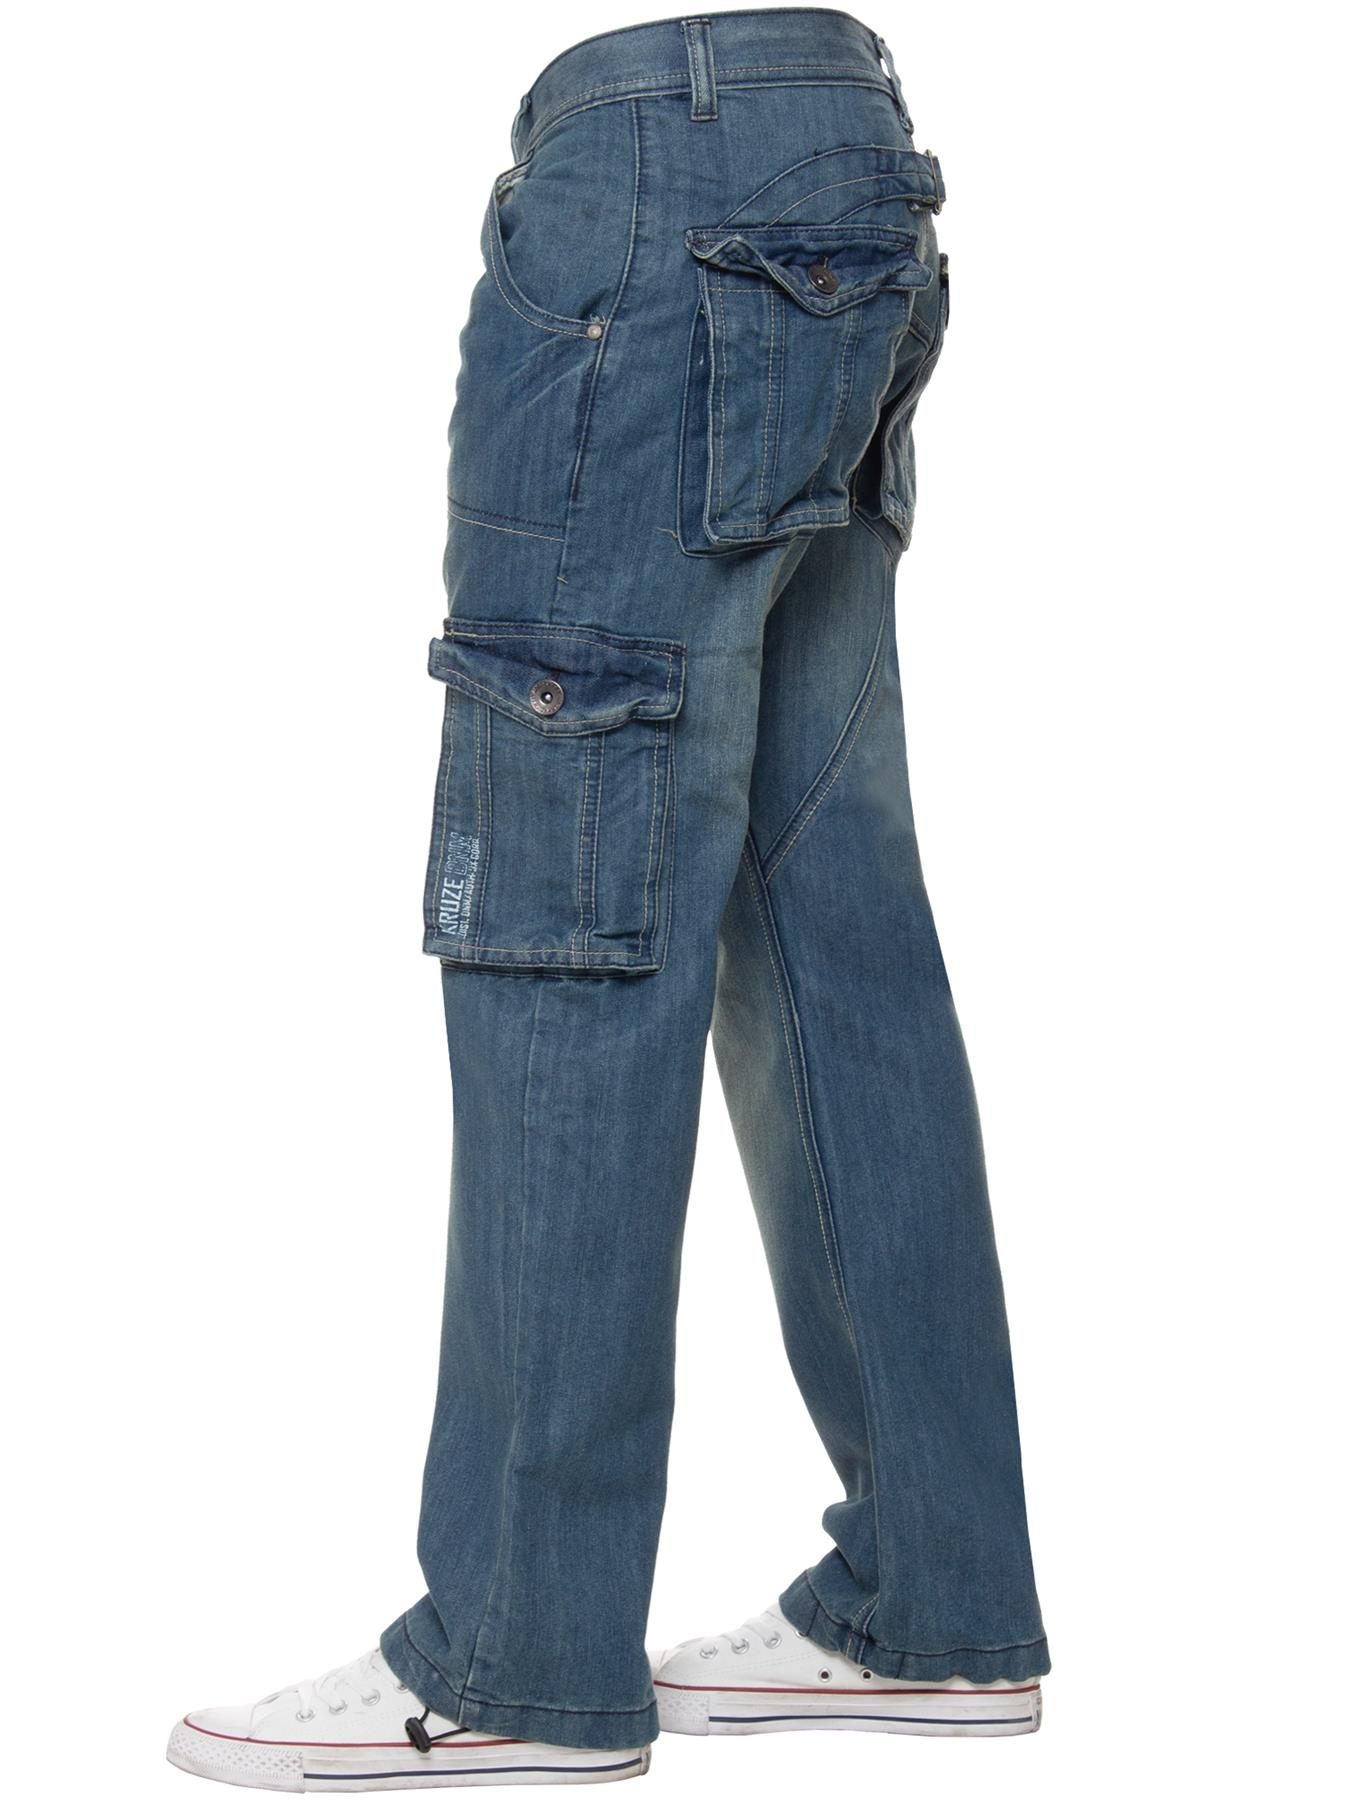 Kruze-Mens-Cargo-Combat-Jeans-Casual-Work-Denim-Pants-Big-Tall-All-Waist-Sizes thumbnail 12